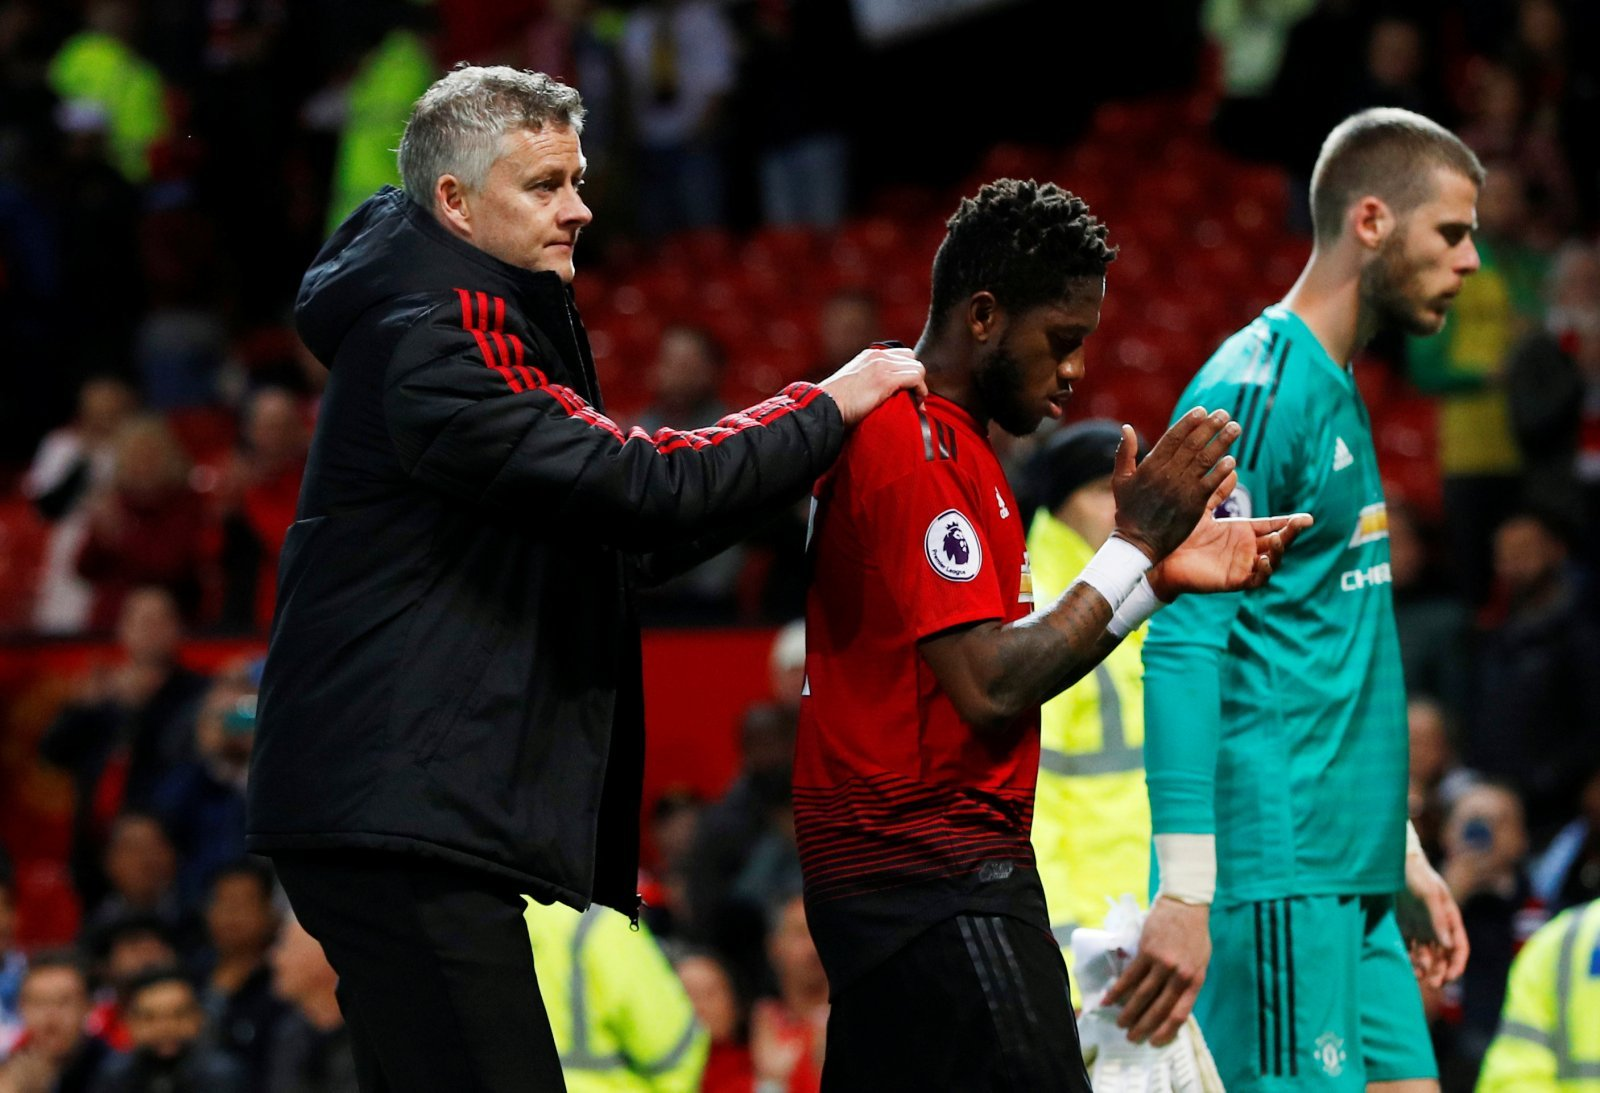 Manchester United: Previous numbers suggest Fred may still come good